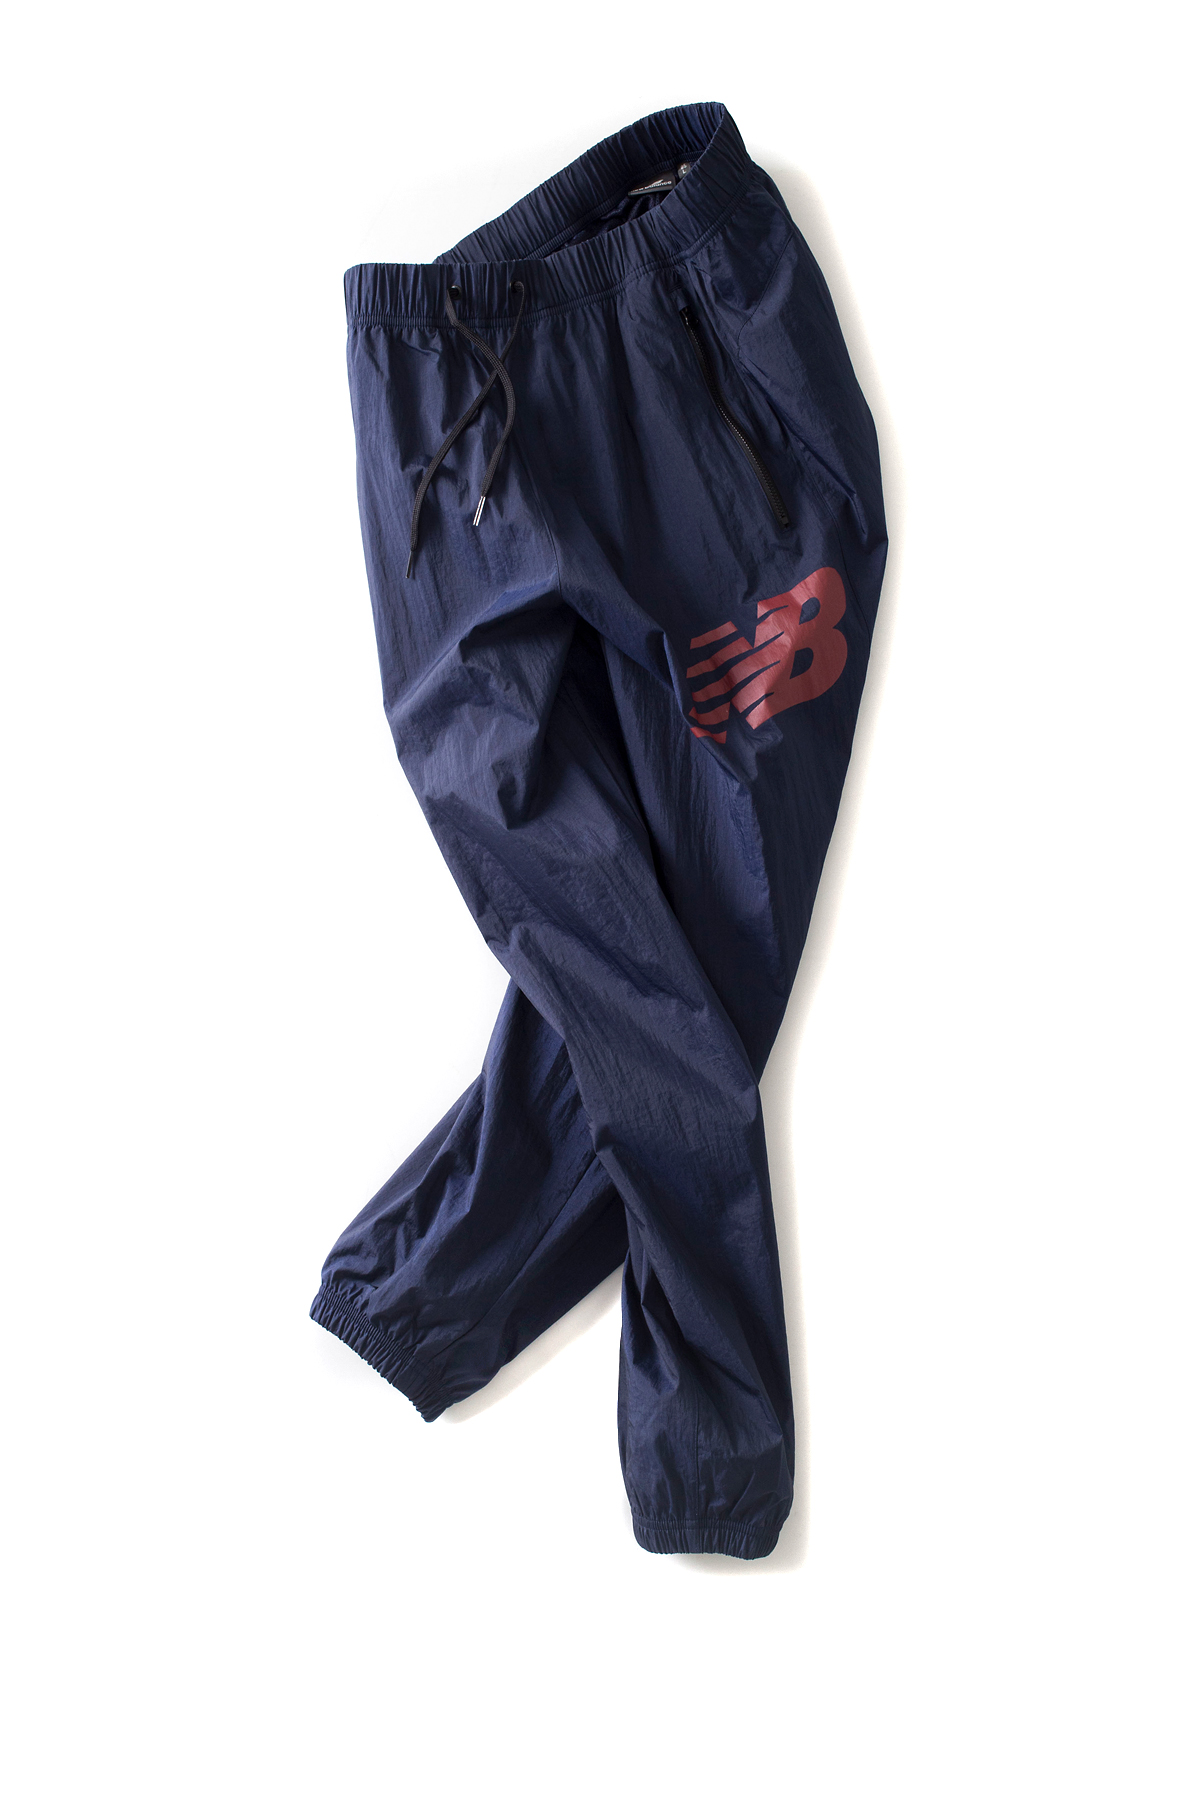 New Balance : UNI Classic Woven Pants (Navy)